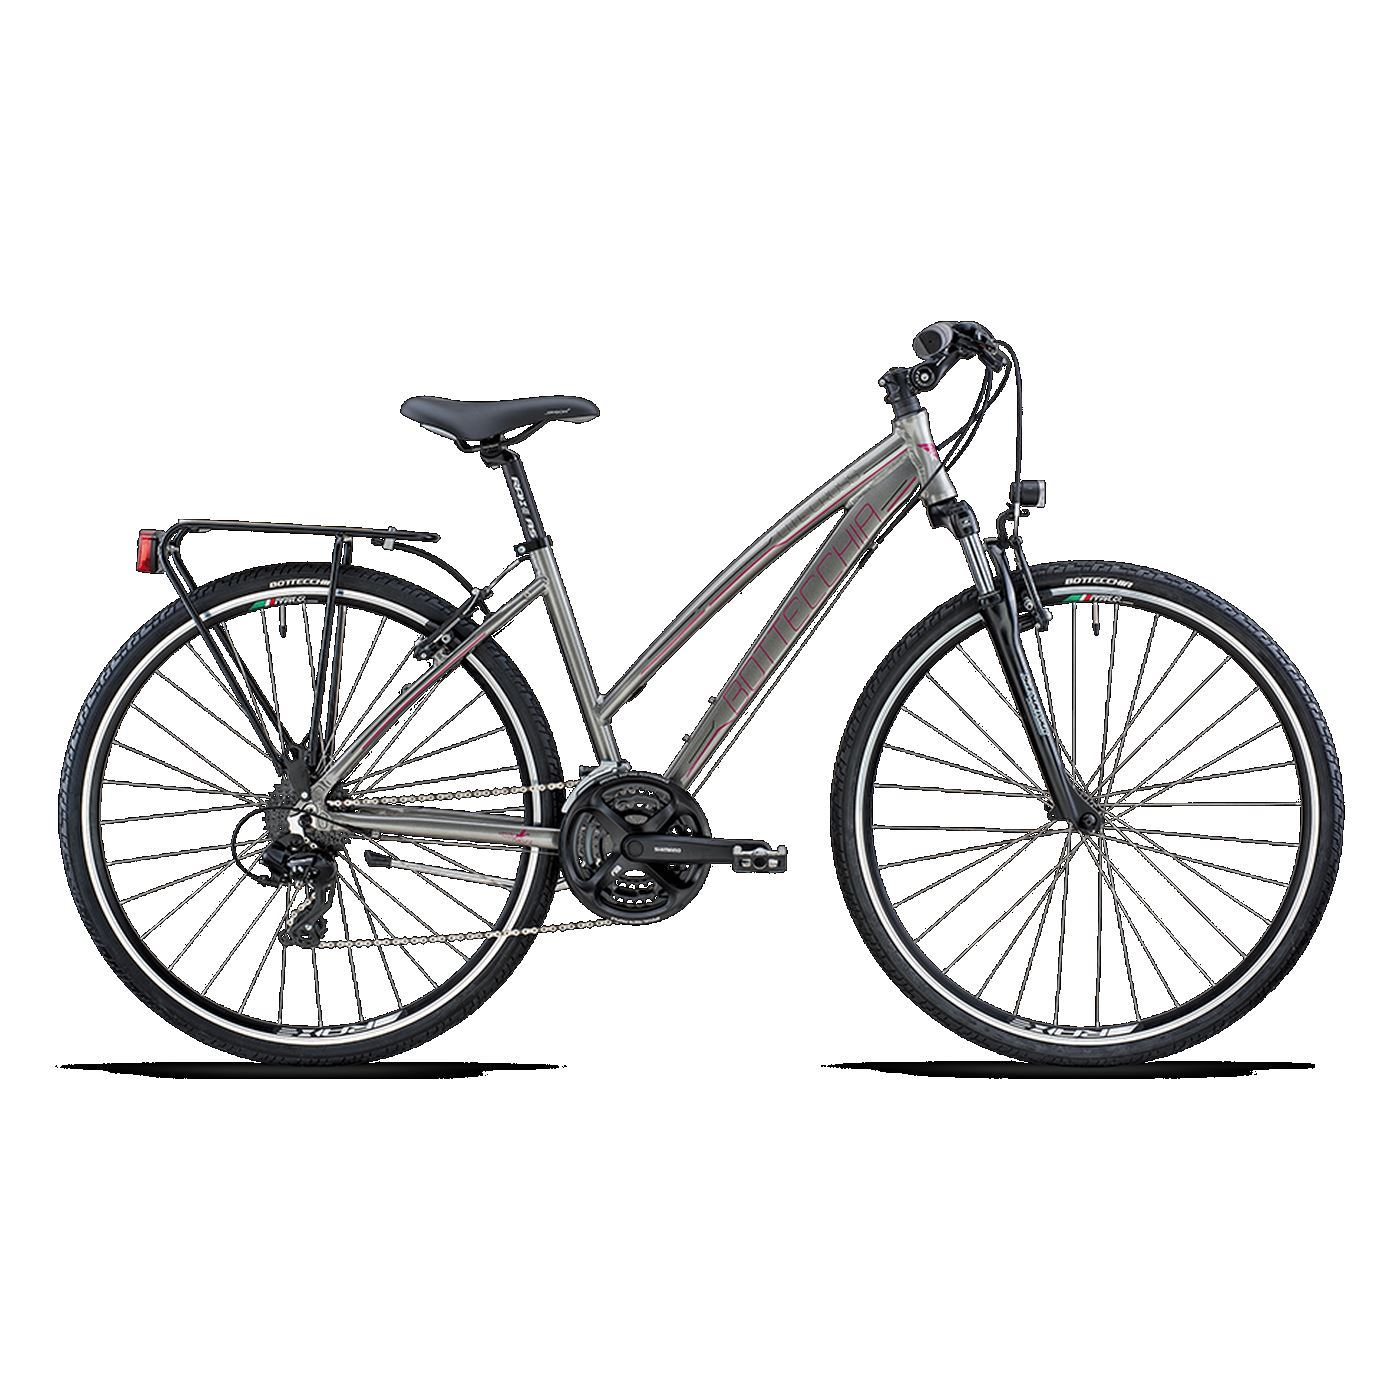 TREKING KOLO BOTTECCHIA 316 FS TX800 LADY (SIV) 2020